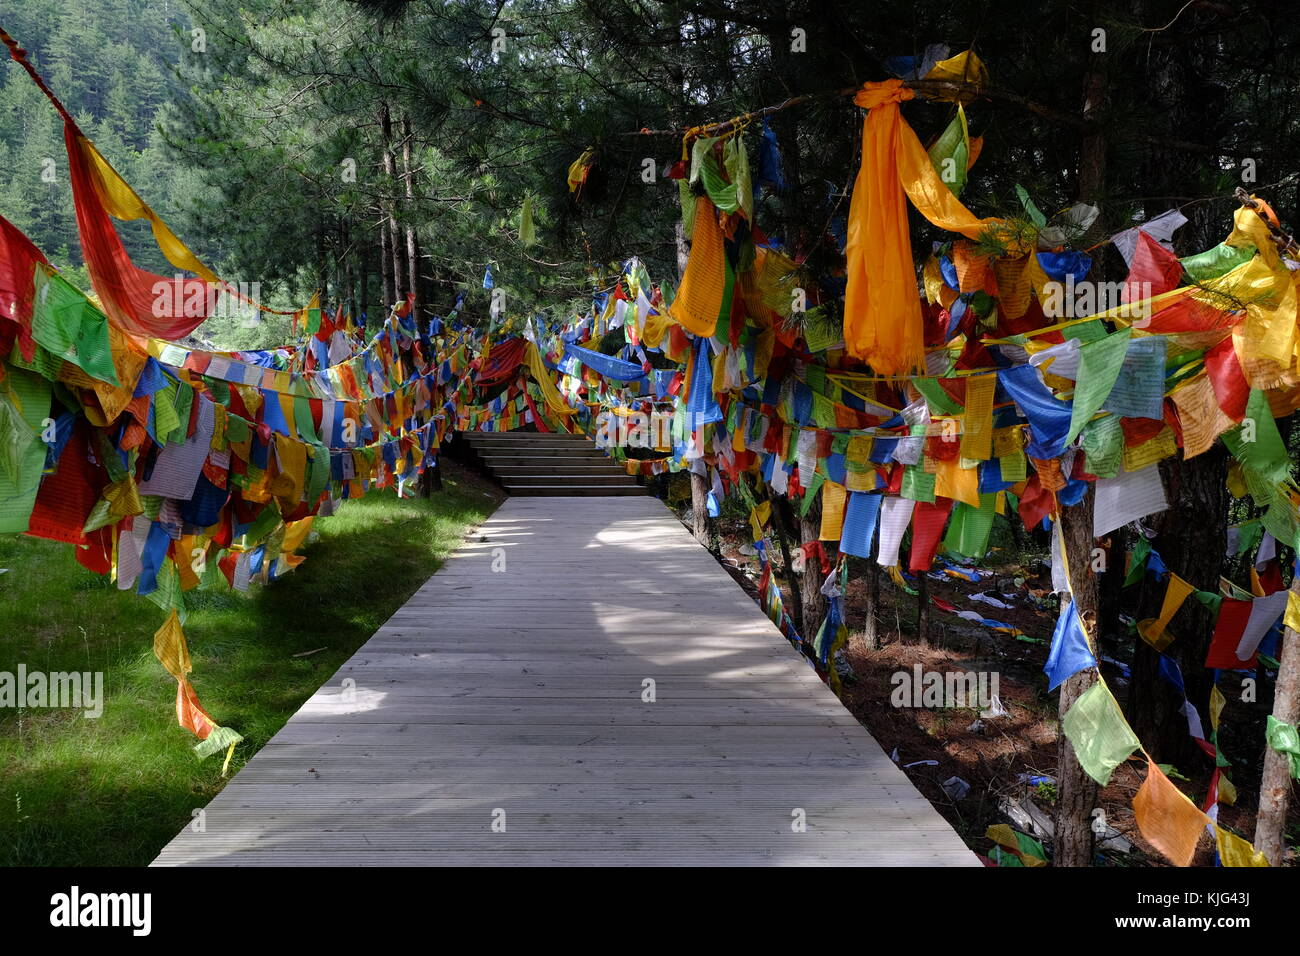 Praying flags and walking path at Jiuzhaigou valley - Stock Image